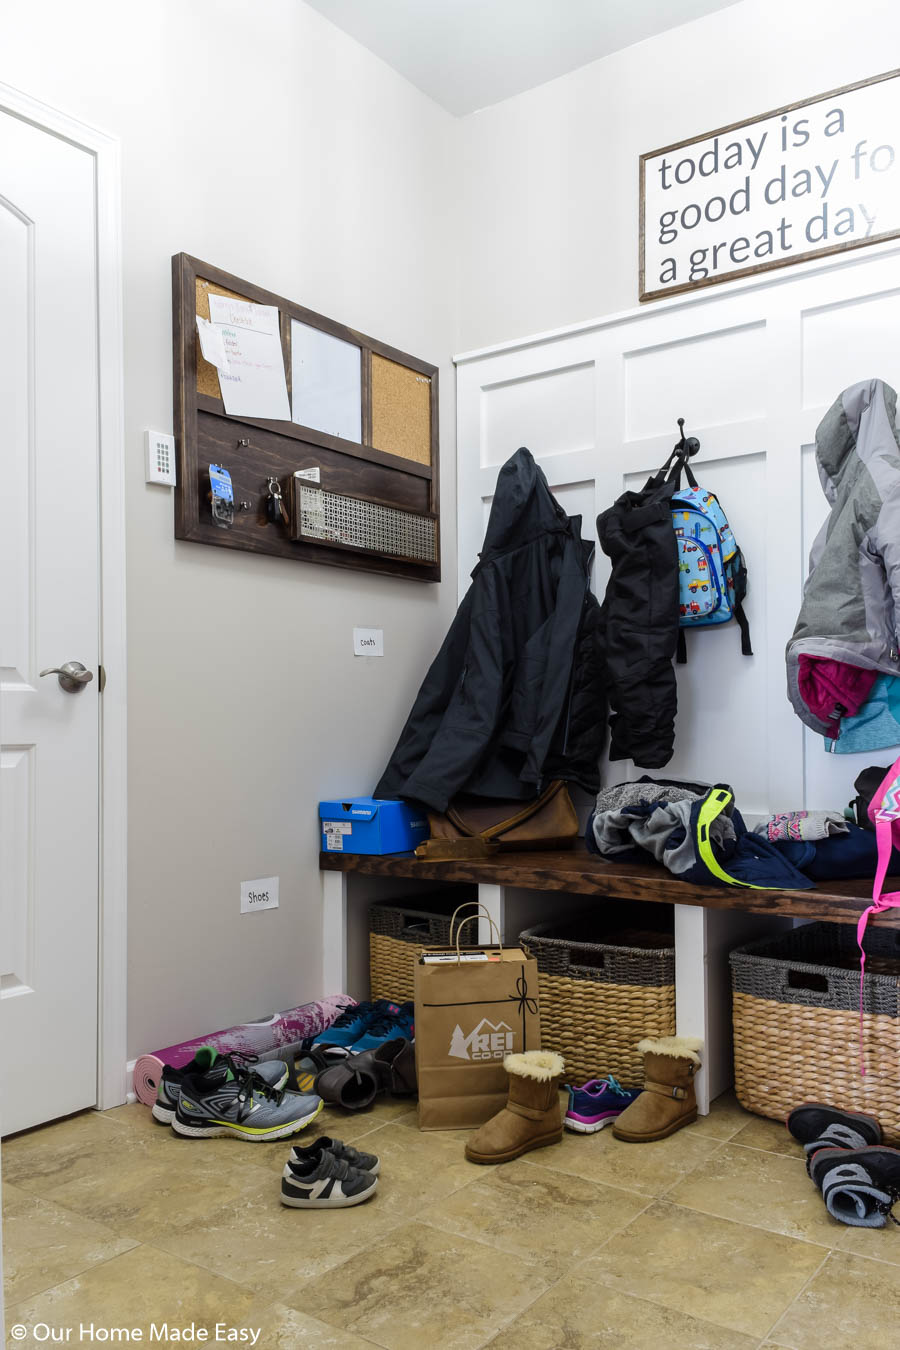 Even with more storage, small spaces can get disorganized quickly